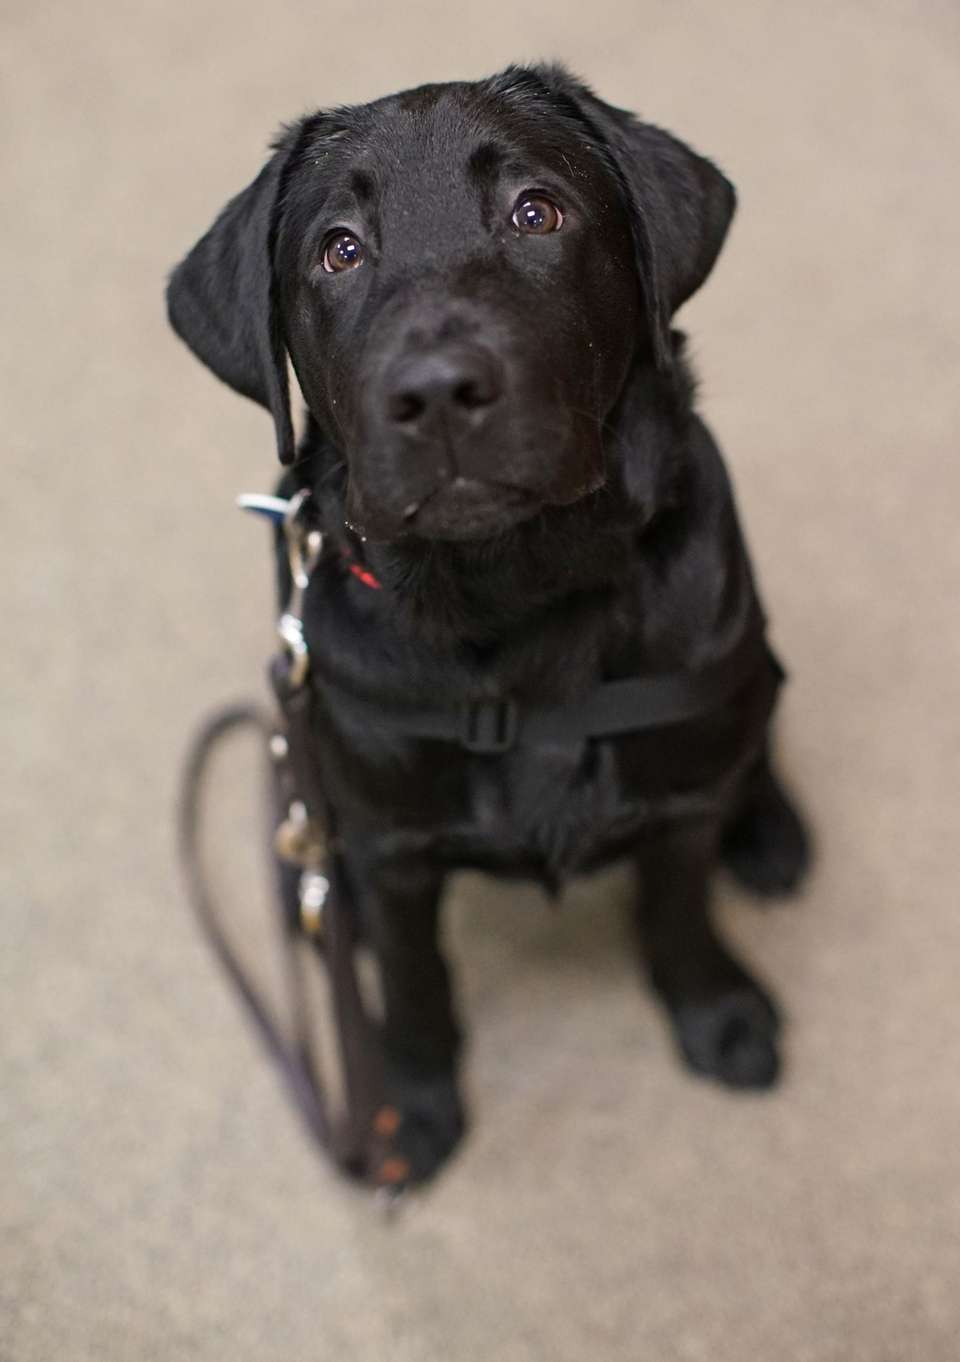 America's Vetdogs is home to Charlie, the adorable